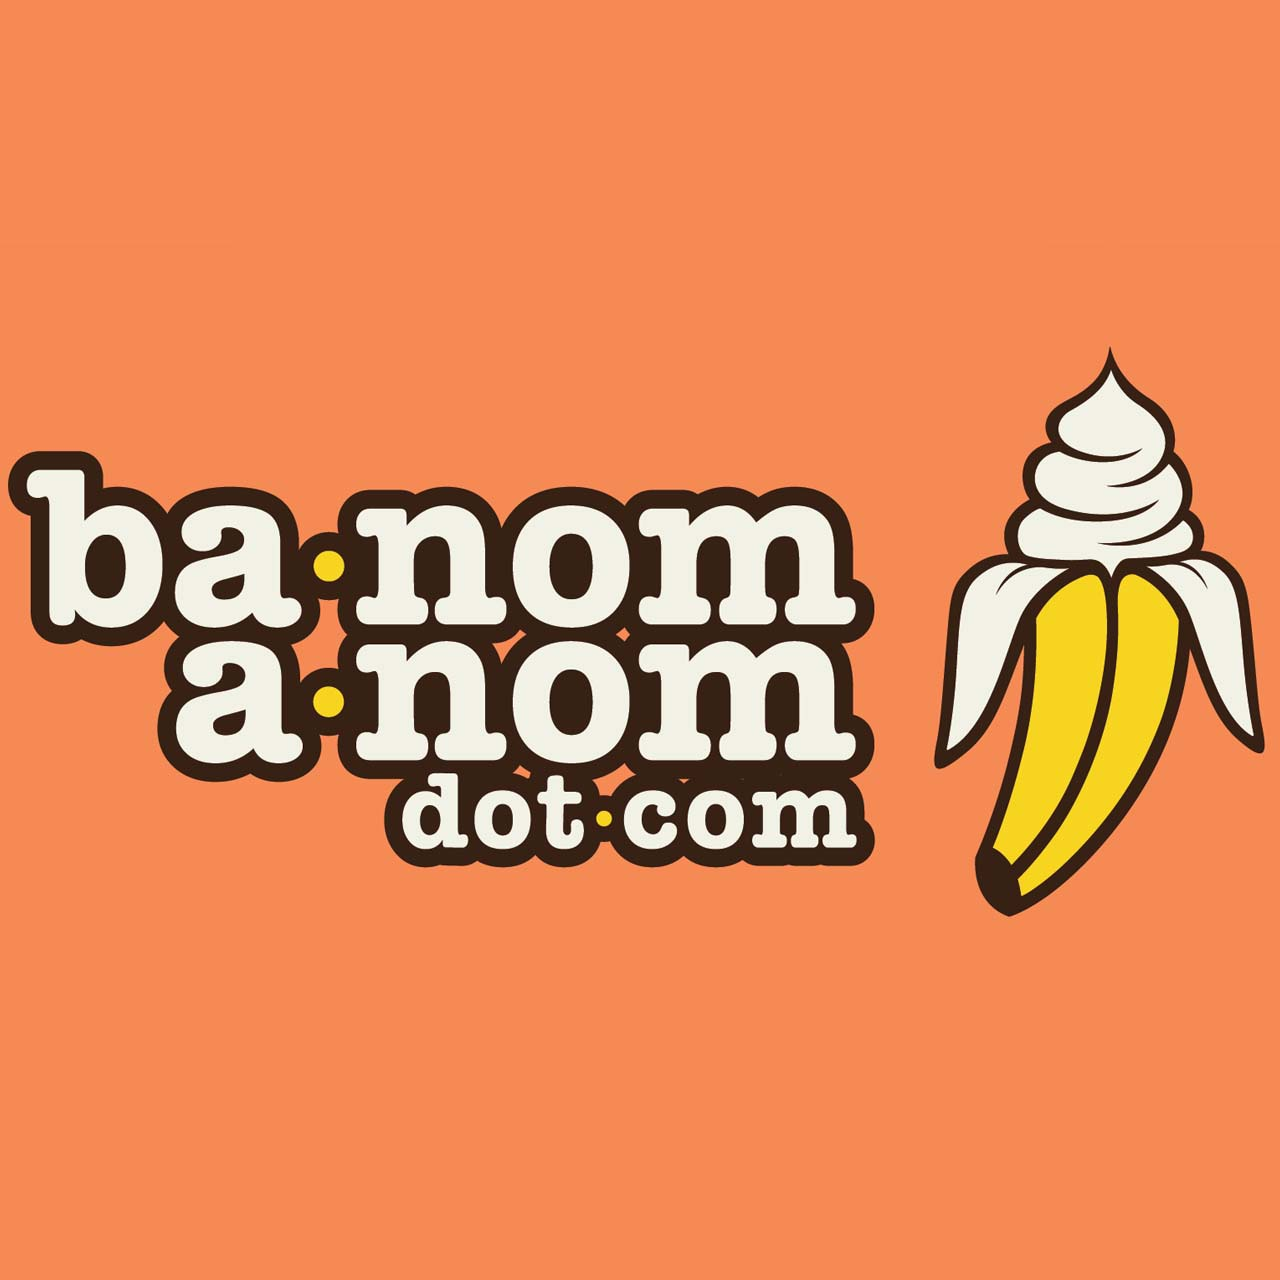 Ba-Nom-a-Nom   We take a variety of frozen fruits, put them through our special blender, and it whips up the frozen fruit into a fluffy, soft serve, consistency. We do not add any dairy, sugar, nut products, stabilizers, or ANYTHING for that matter. just fruit. Ba-Nom-a-Nom is dairy free (vegan), gluten free, nut free, sugar free, fat free, & egg free by nature.